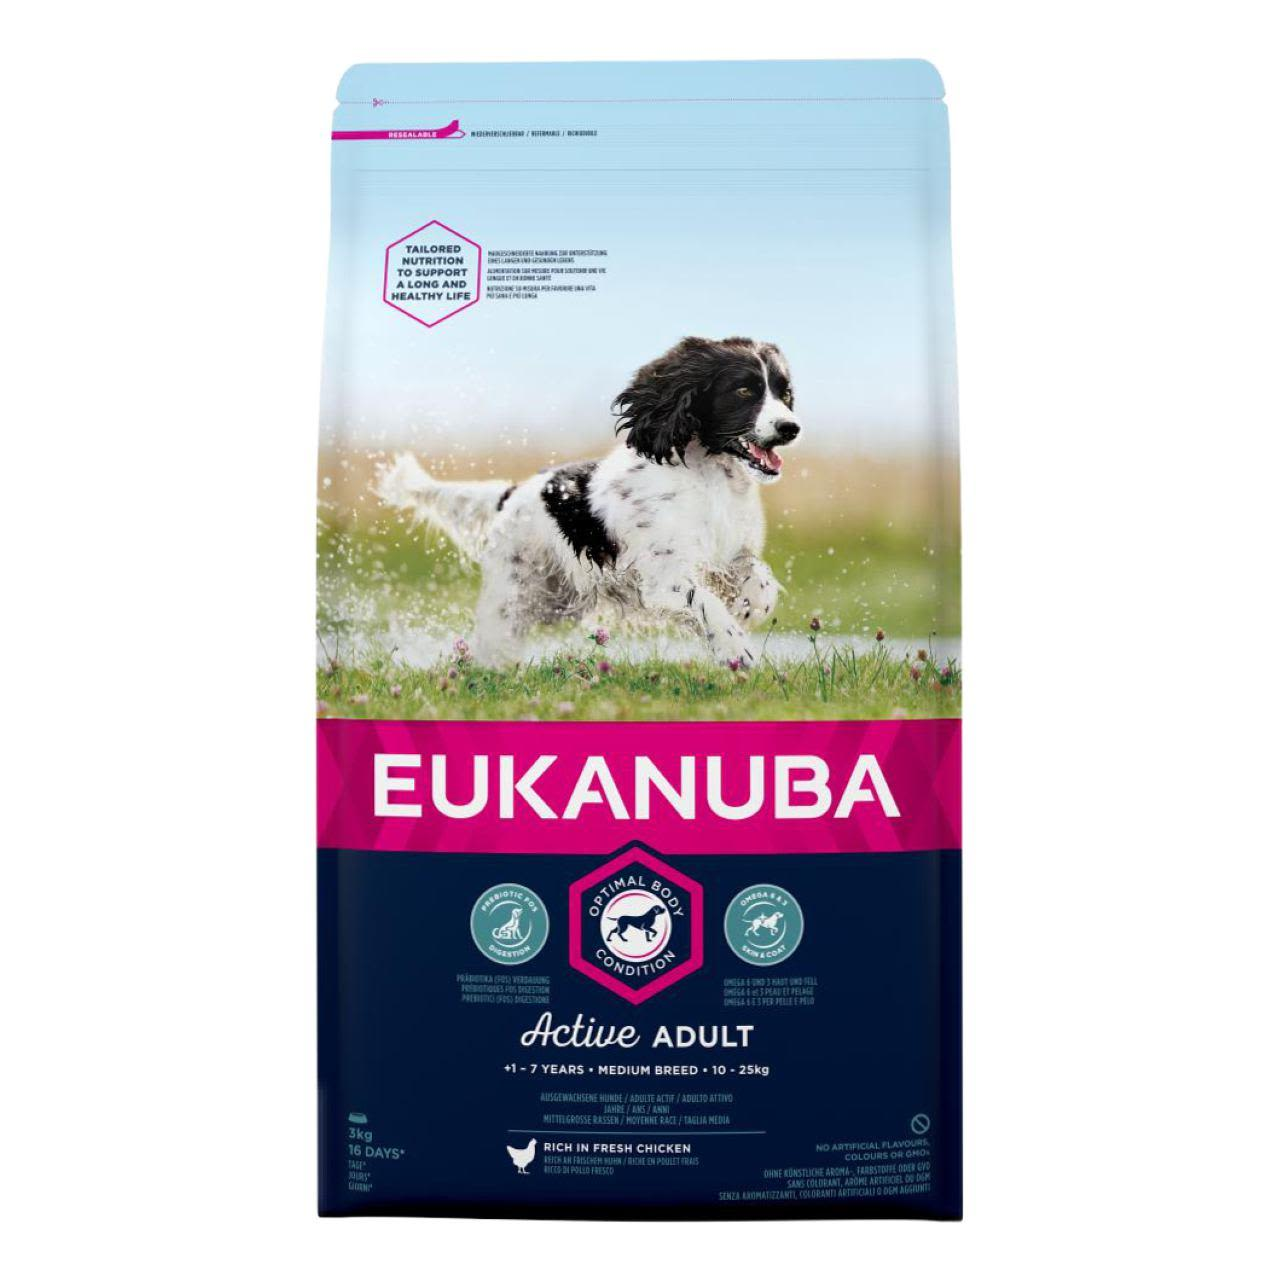 Dog Food: Eukanuba Dog Food Review